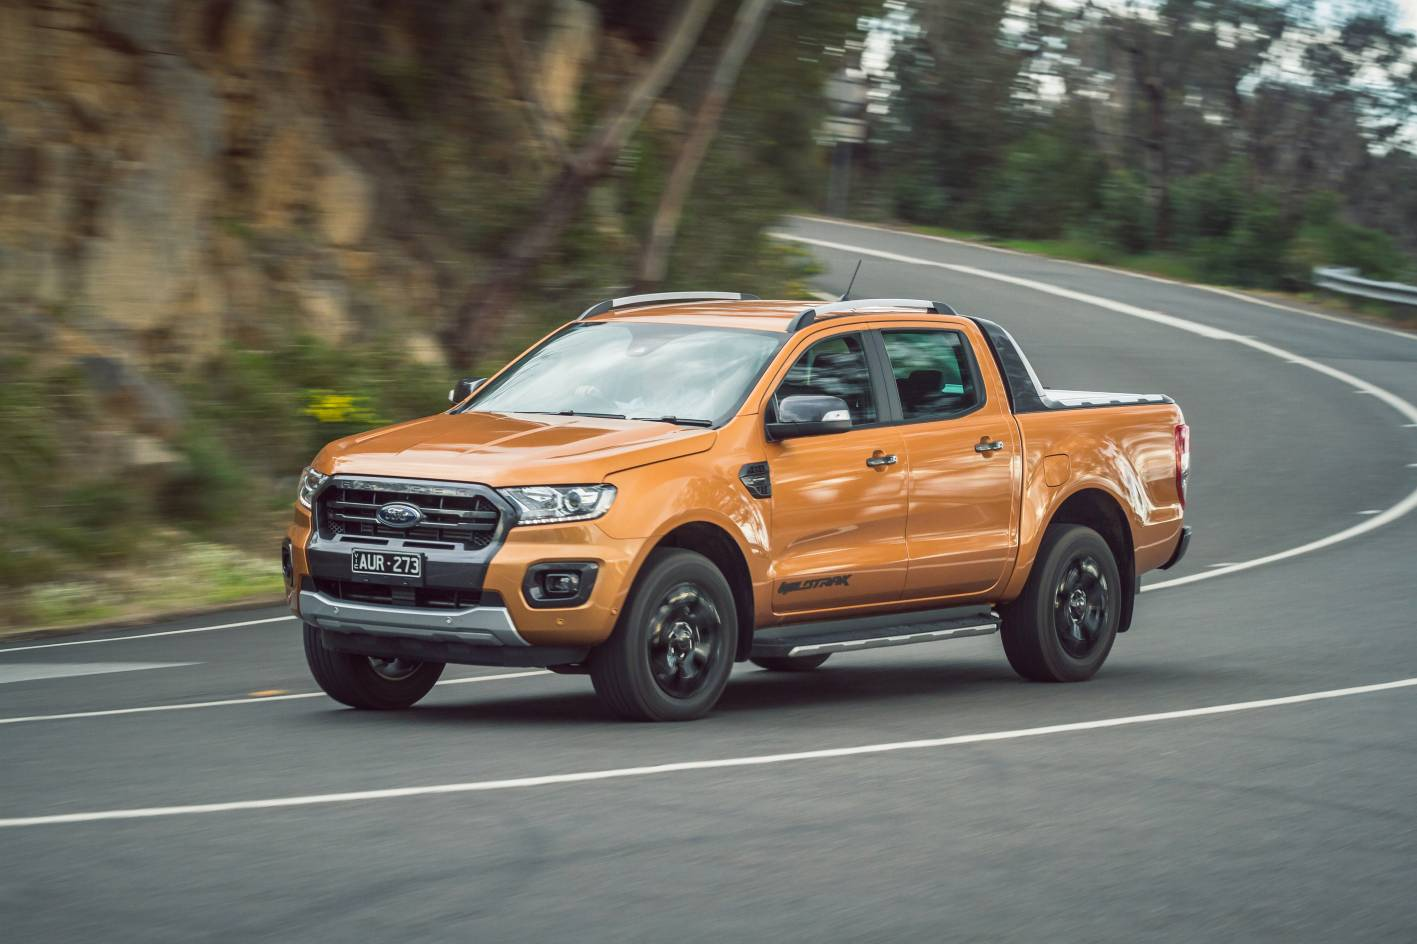 Should I Buy a Ford Ranger Ute Despite the Oil Change Issue